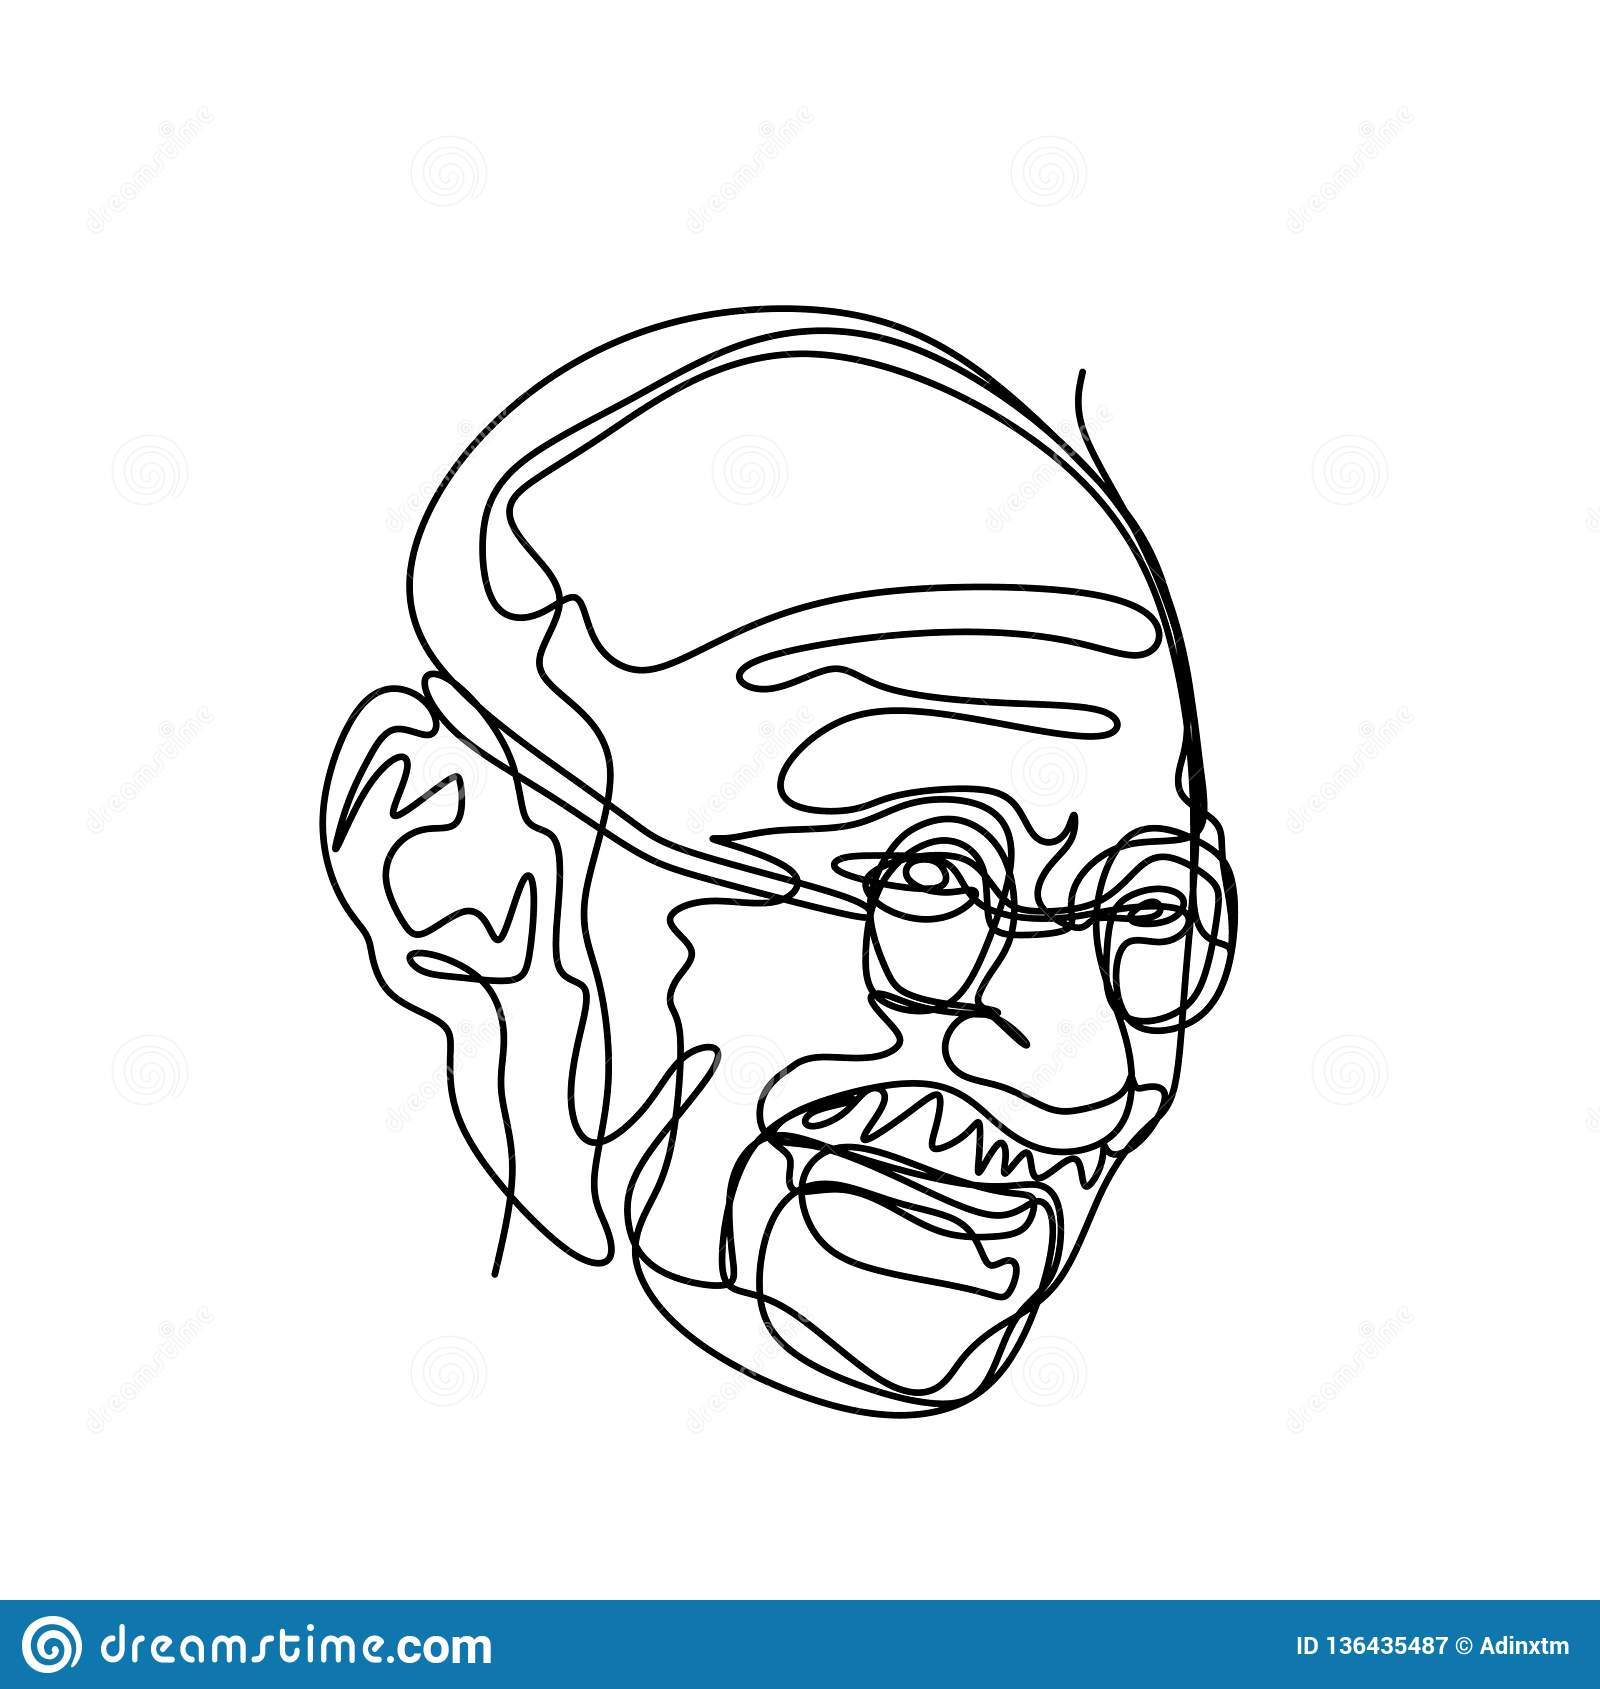 Continuous line drawing of mahatma gandhi gandhi was the leader of the indian independence movement